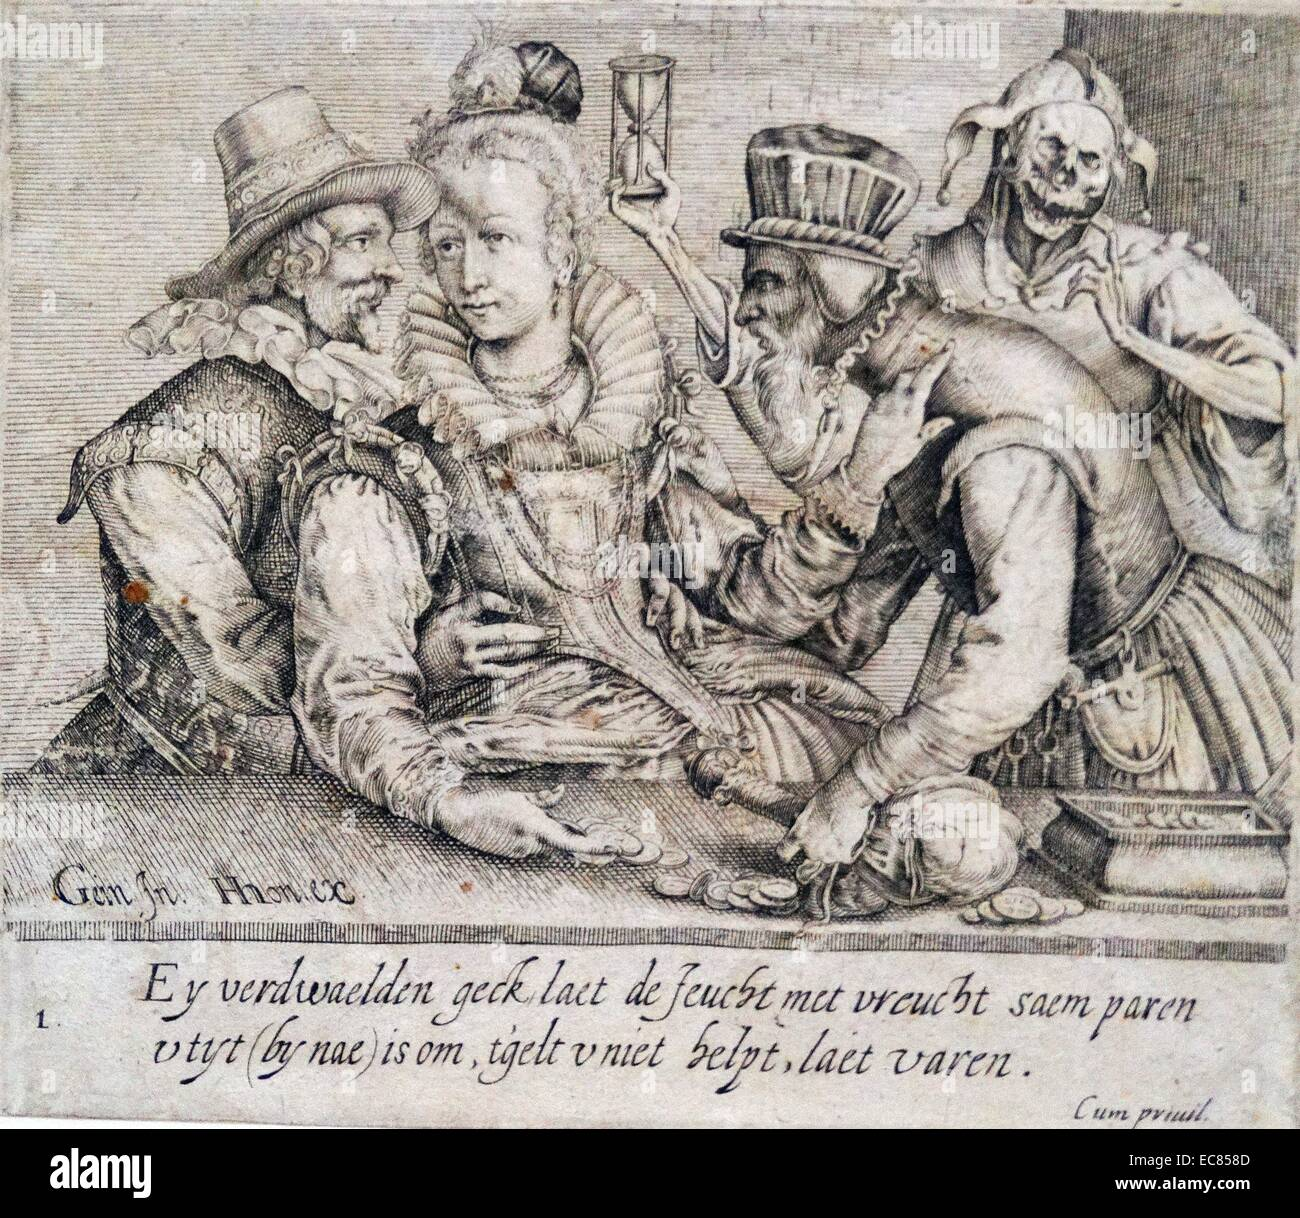 Engraving titled 'Unequal Love'. By Andries Stock (1580-1648) Baroque engraver, printmaker and illustrator. - Stock Image